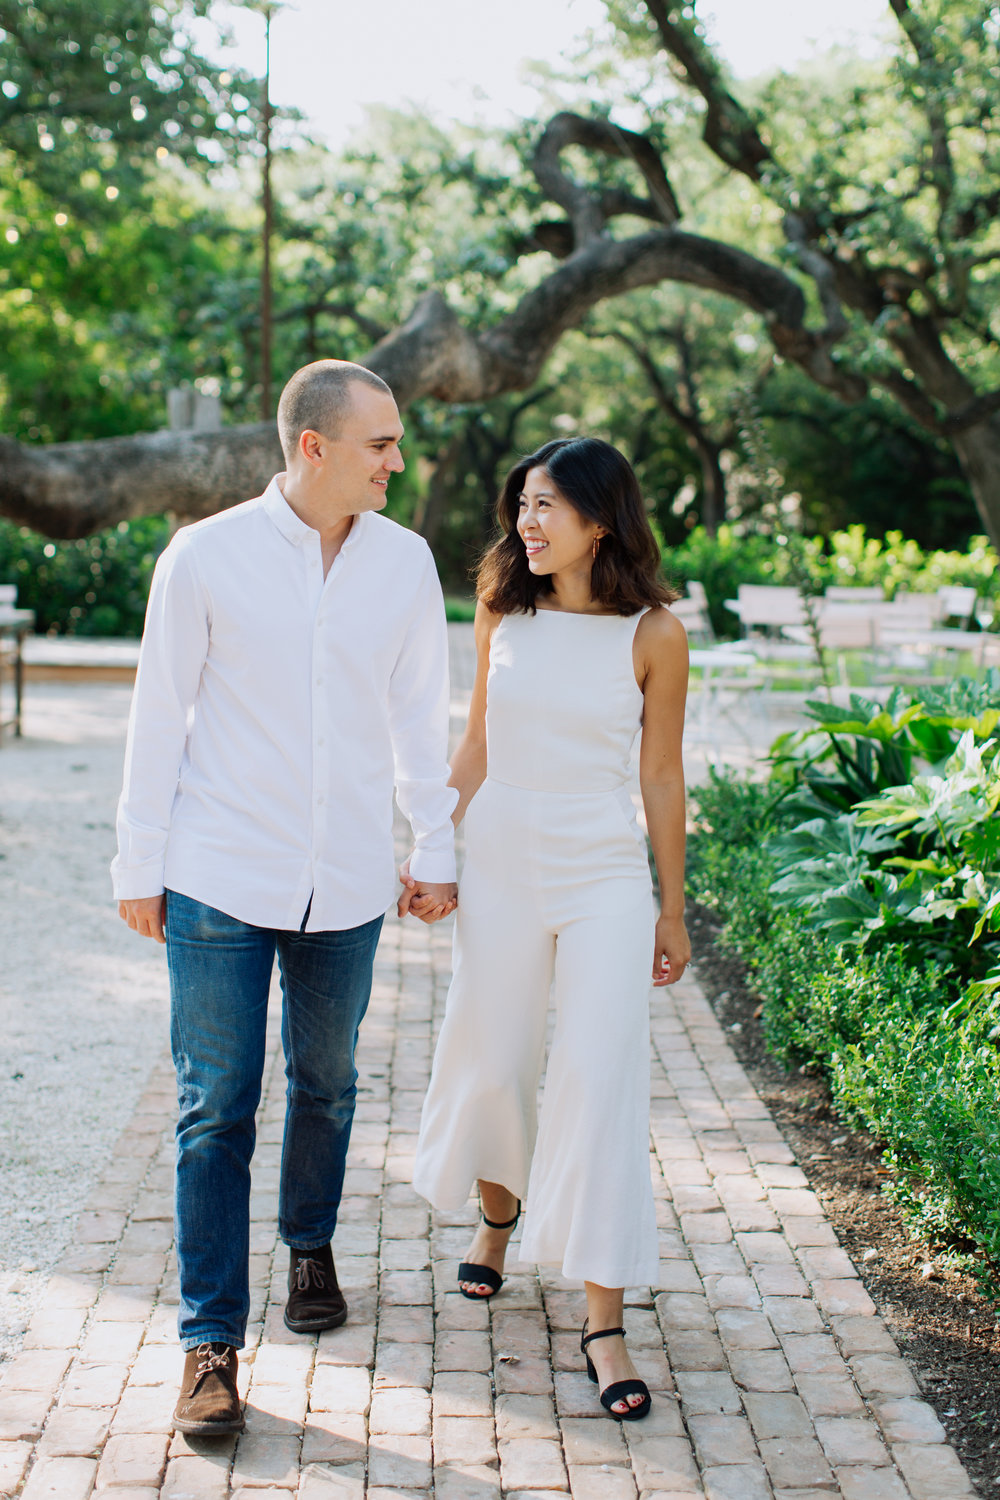 Paige-Newton-Photography-Engagement-Session-Austin-Manana-Coffee-Matties0017.jpg